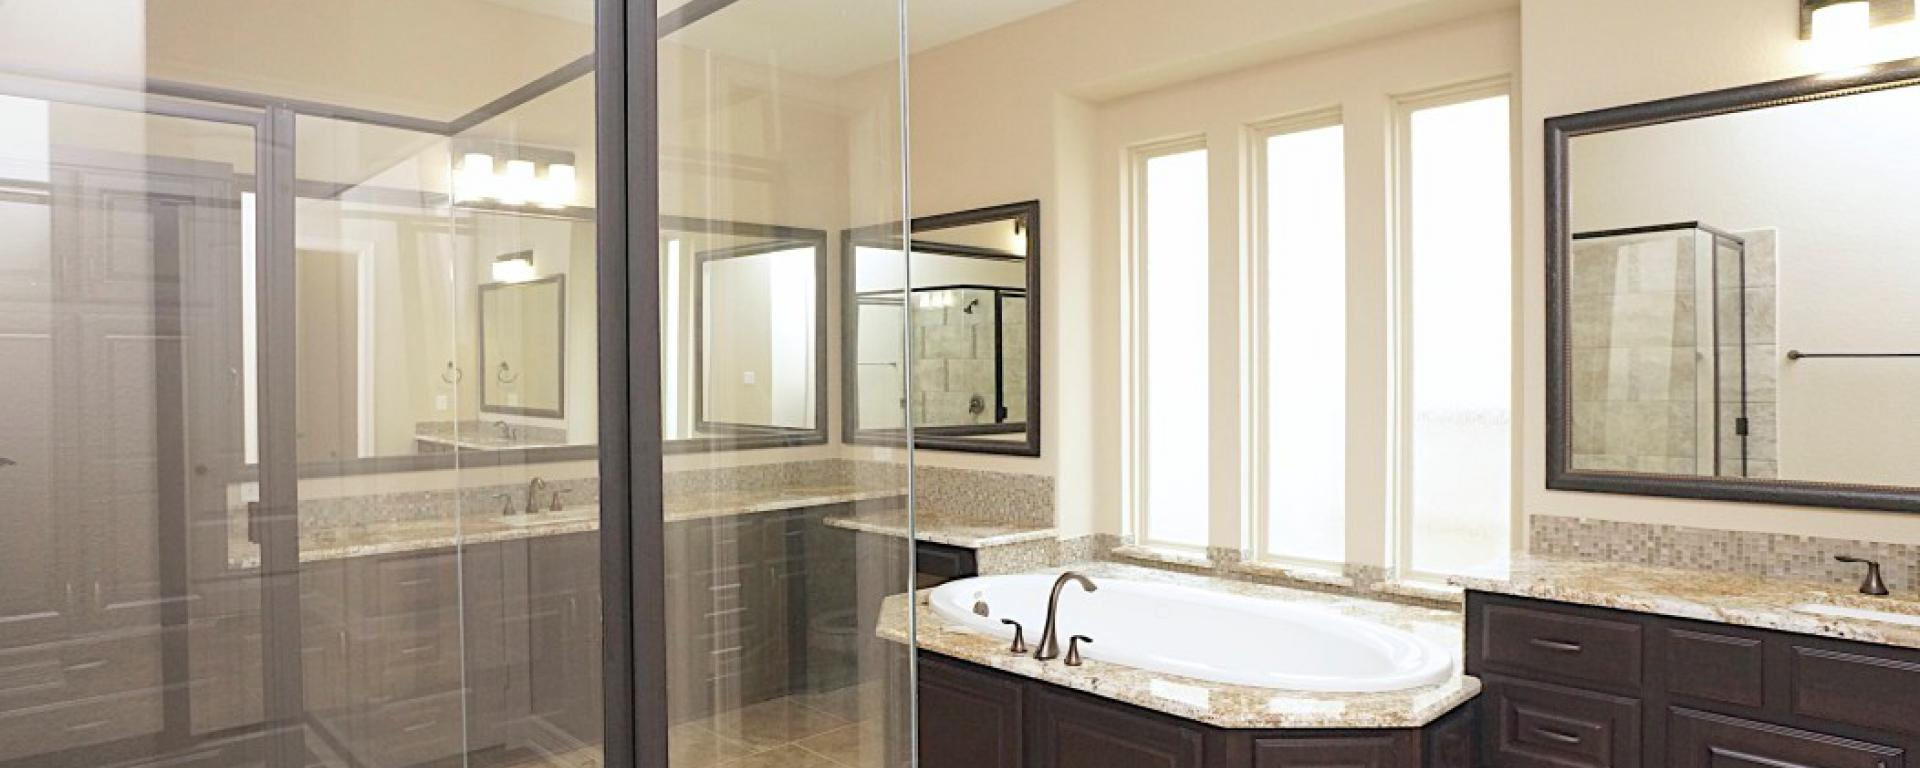 Tamarind new home plan for cypress creek lakes 80ft for Bathroom design 2019